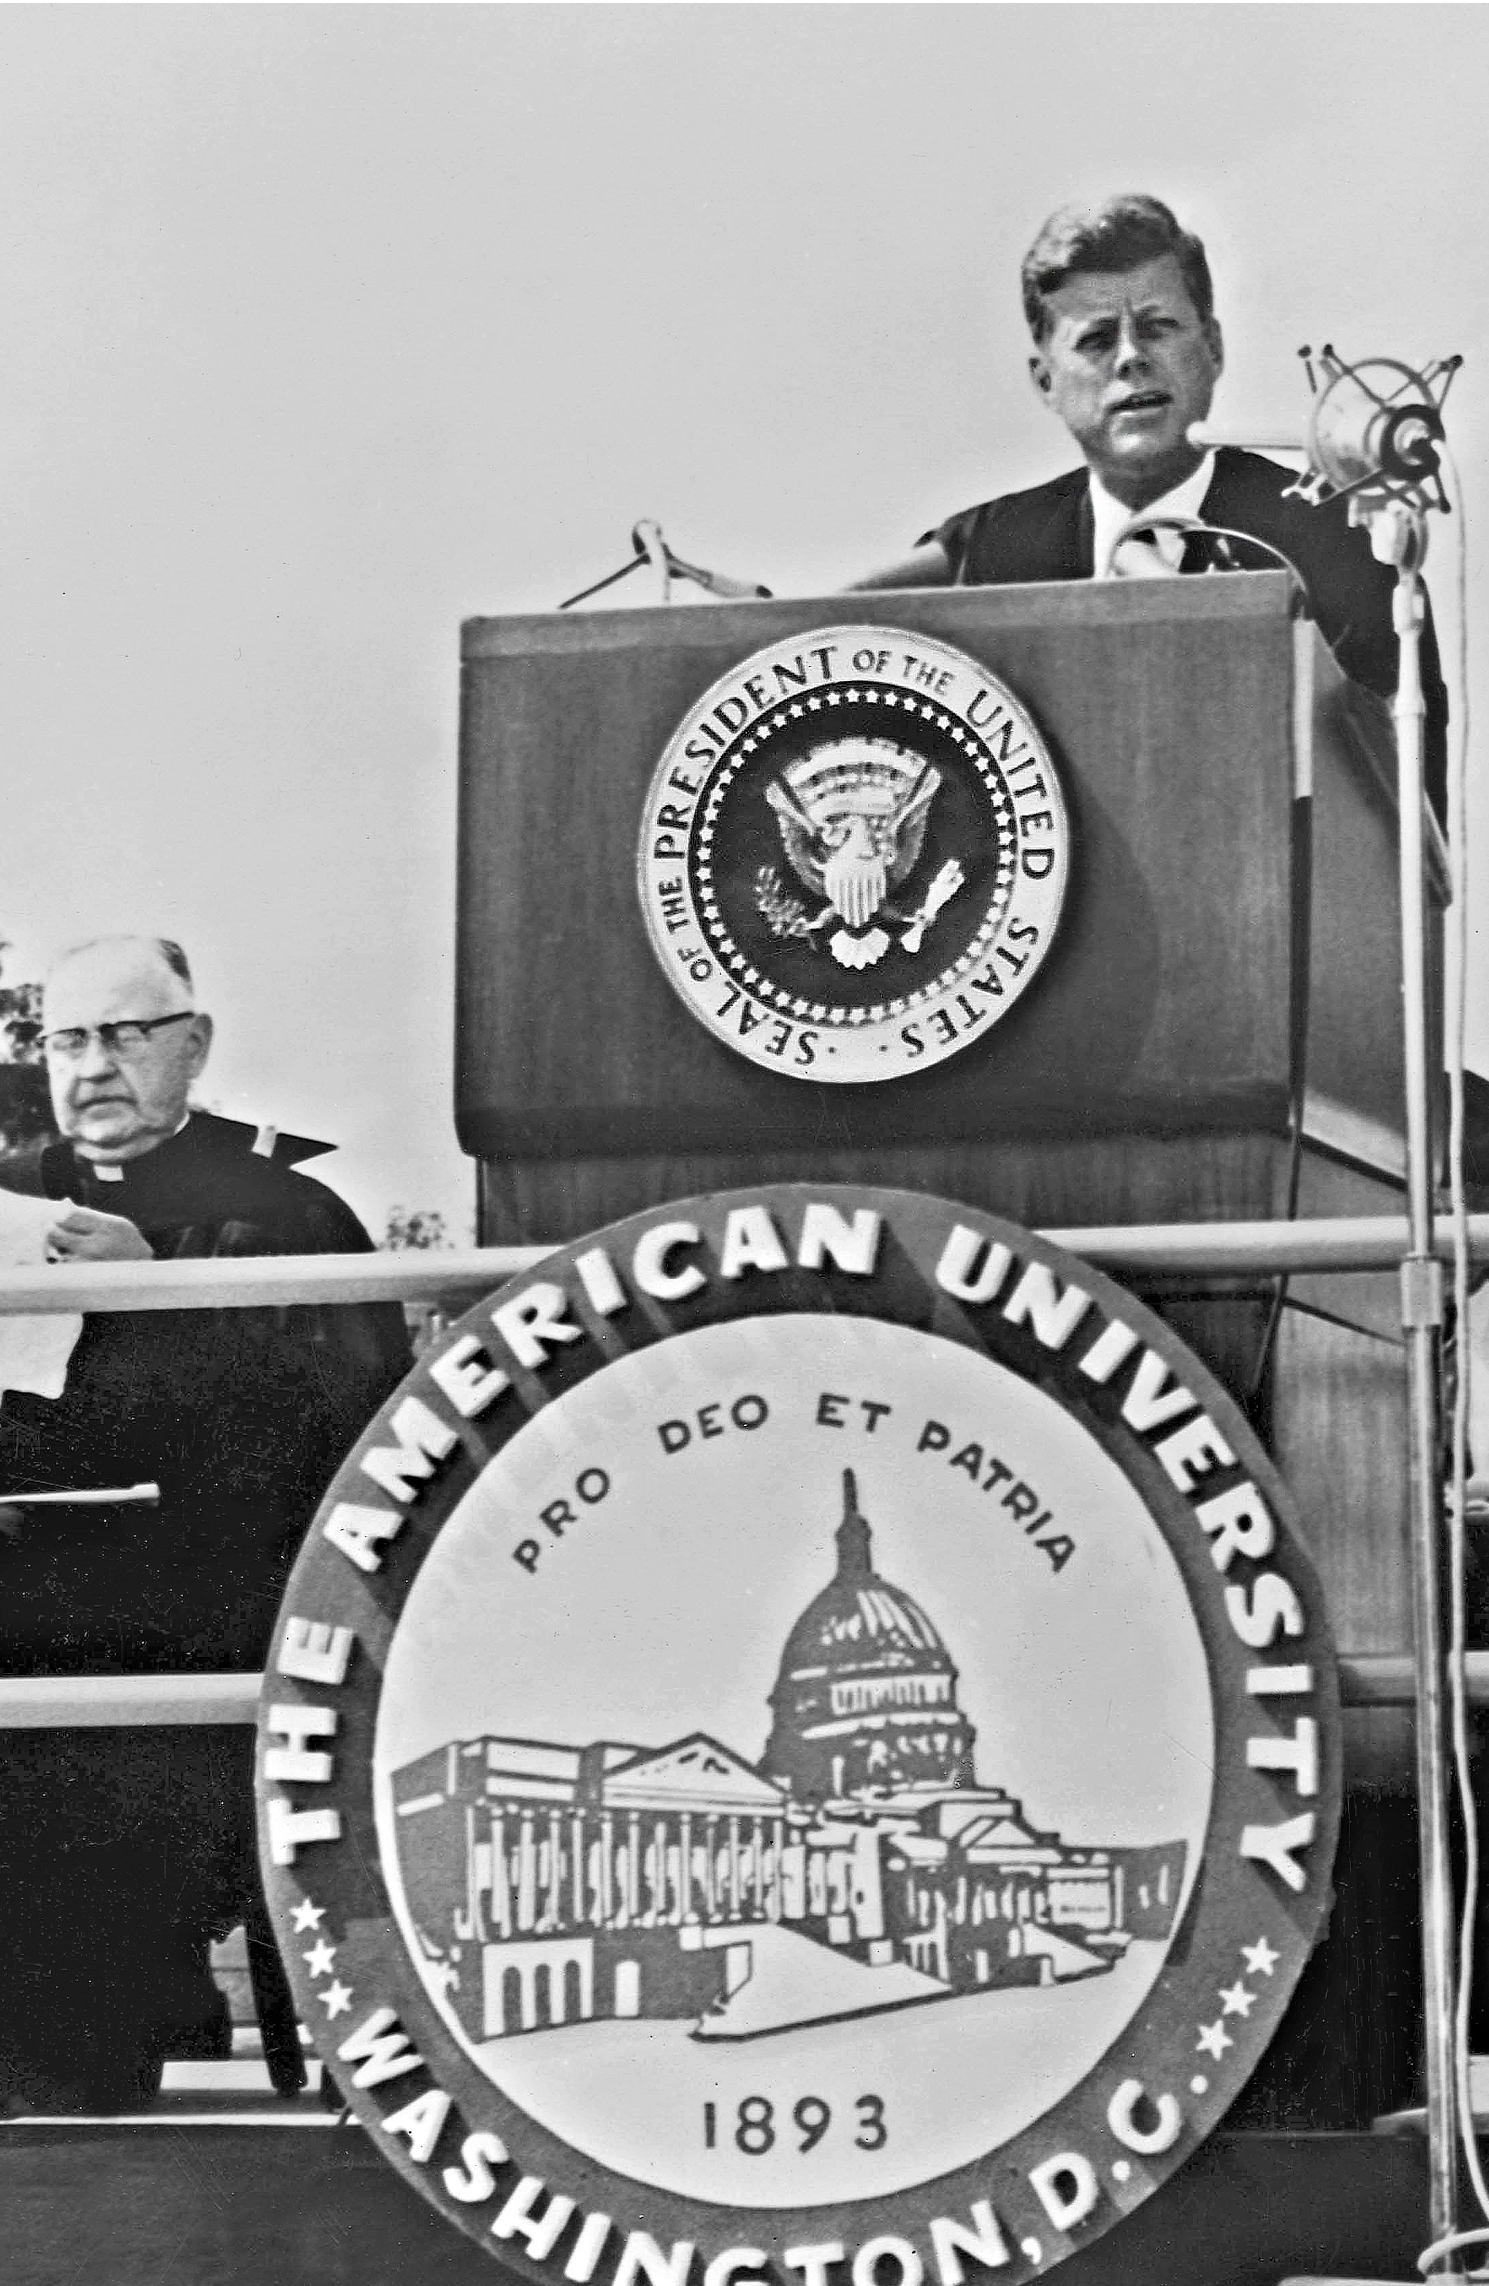 JFK Peace Speech